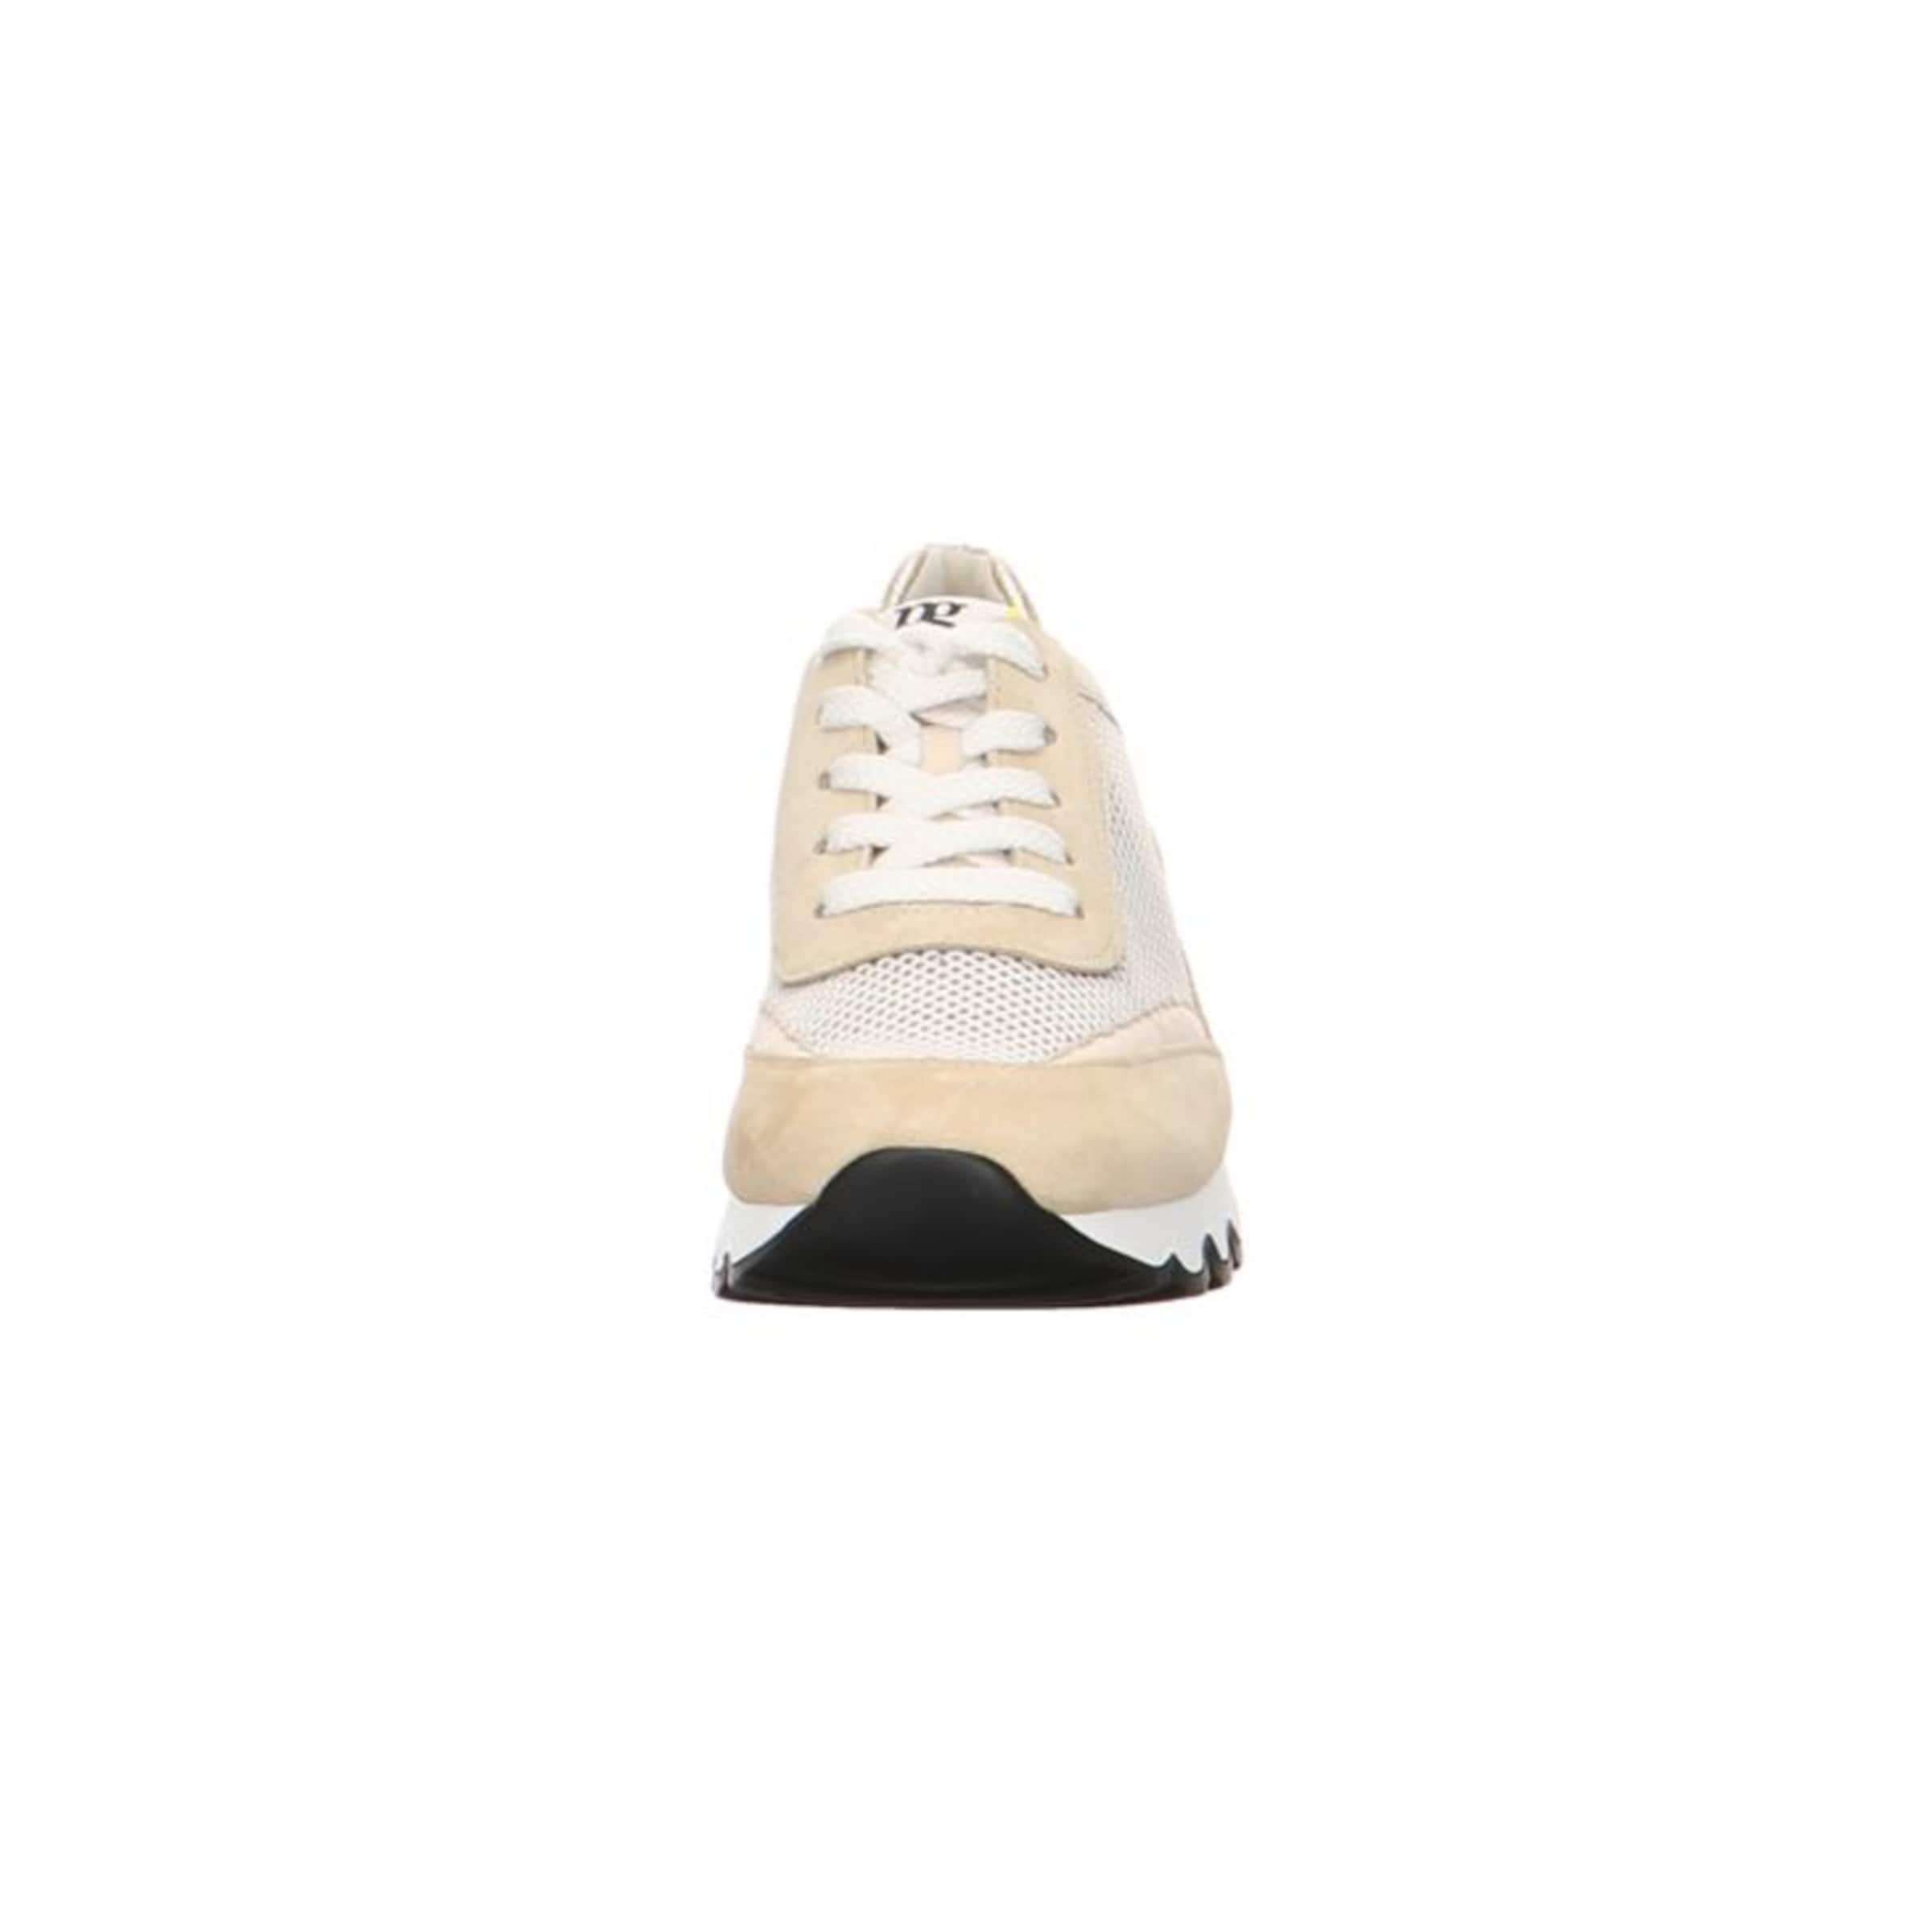 Paul Green Sneakers in beige